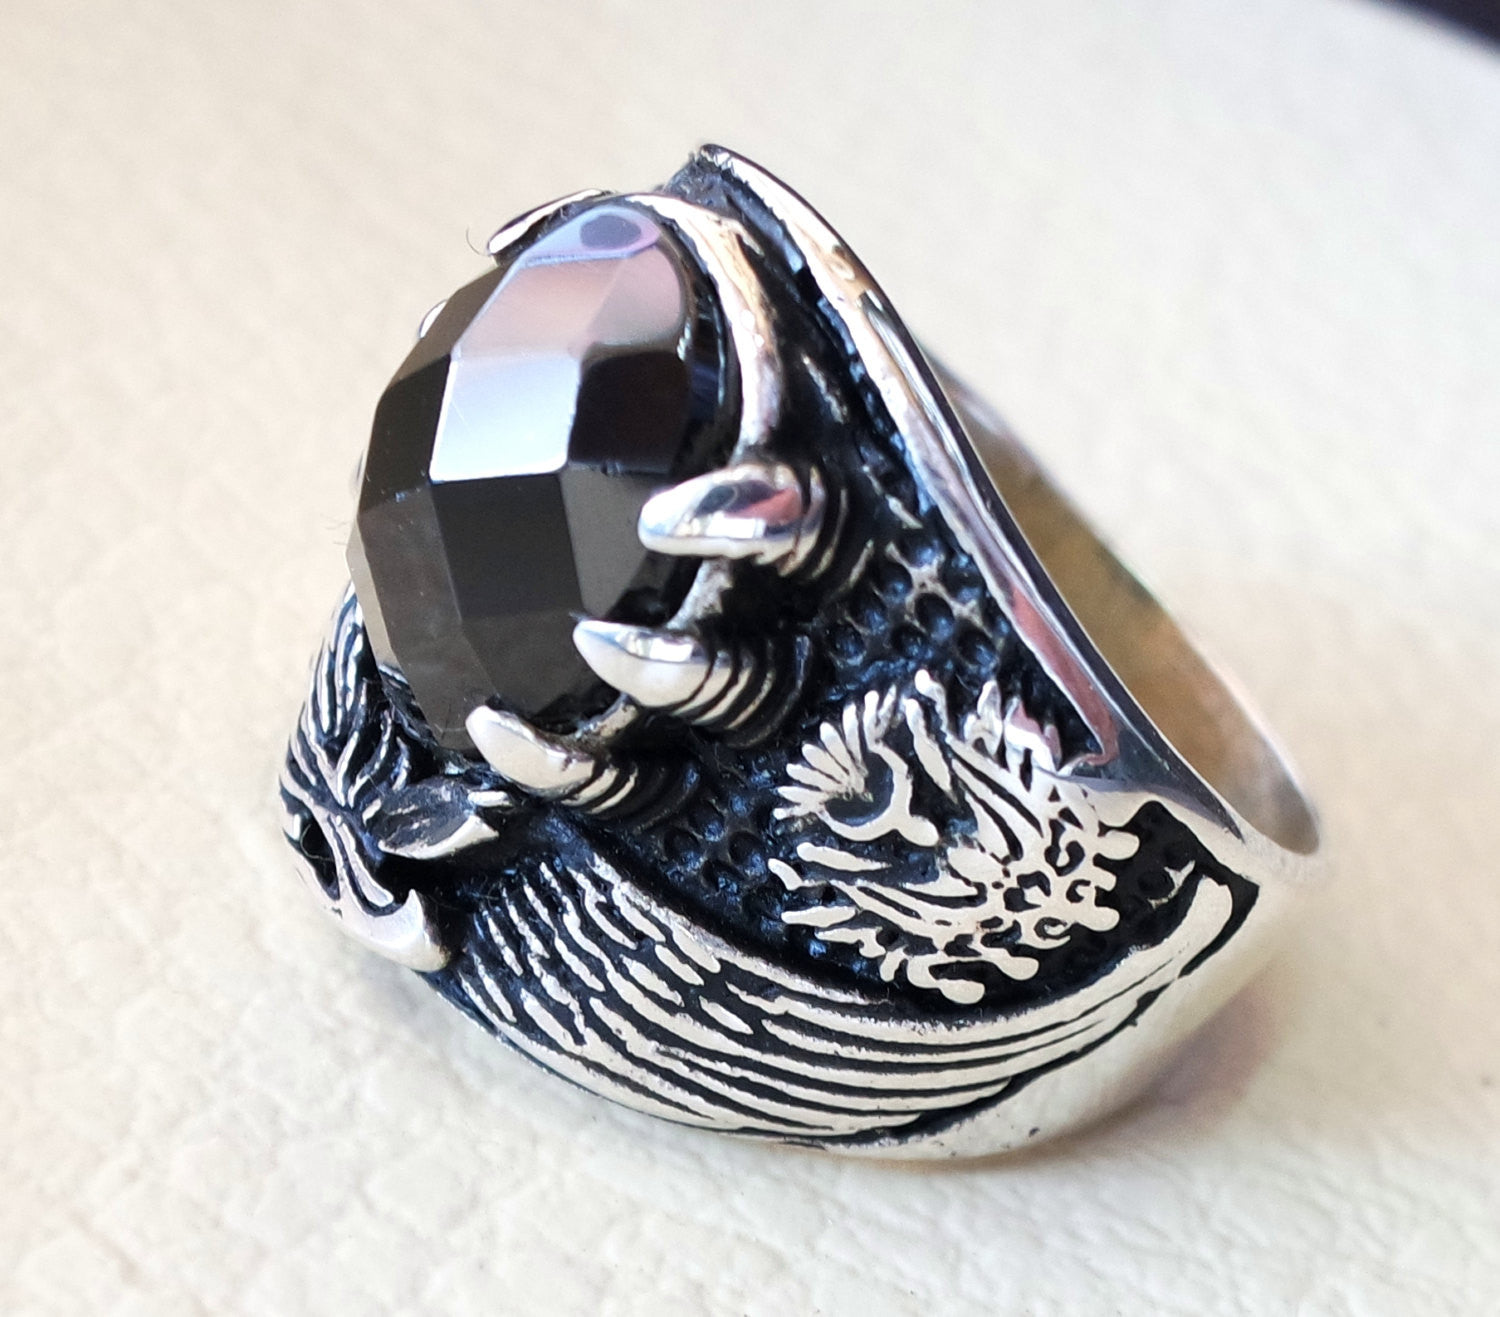 black onyx oval stone arabic men ring sterling silver 925 eagle arabic ottoman symbols turkish jewelry style all sizes fast shipping